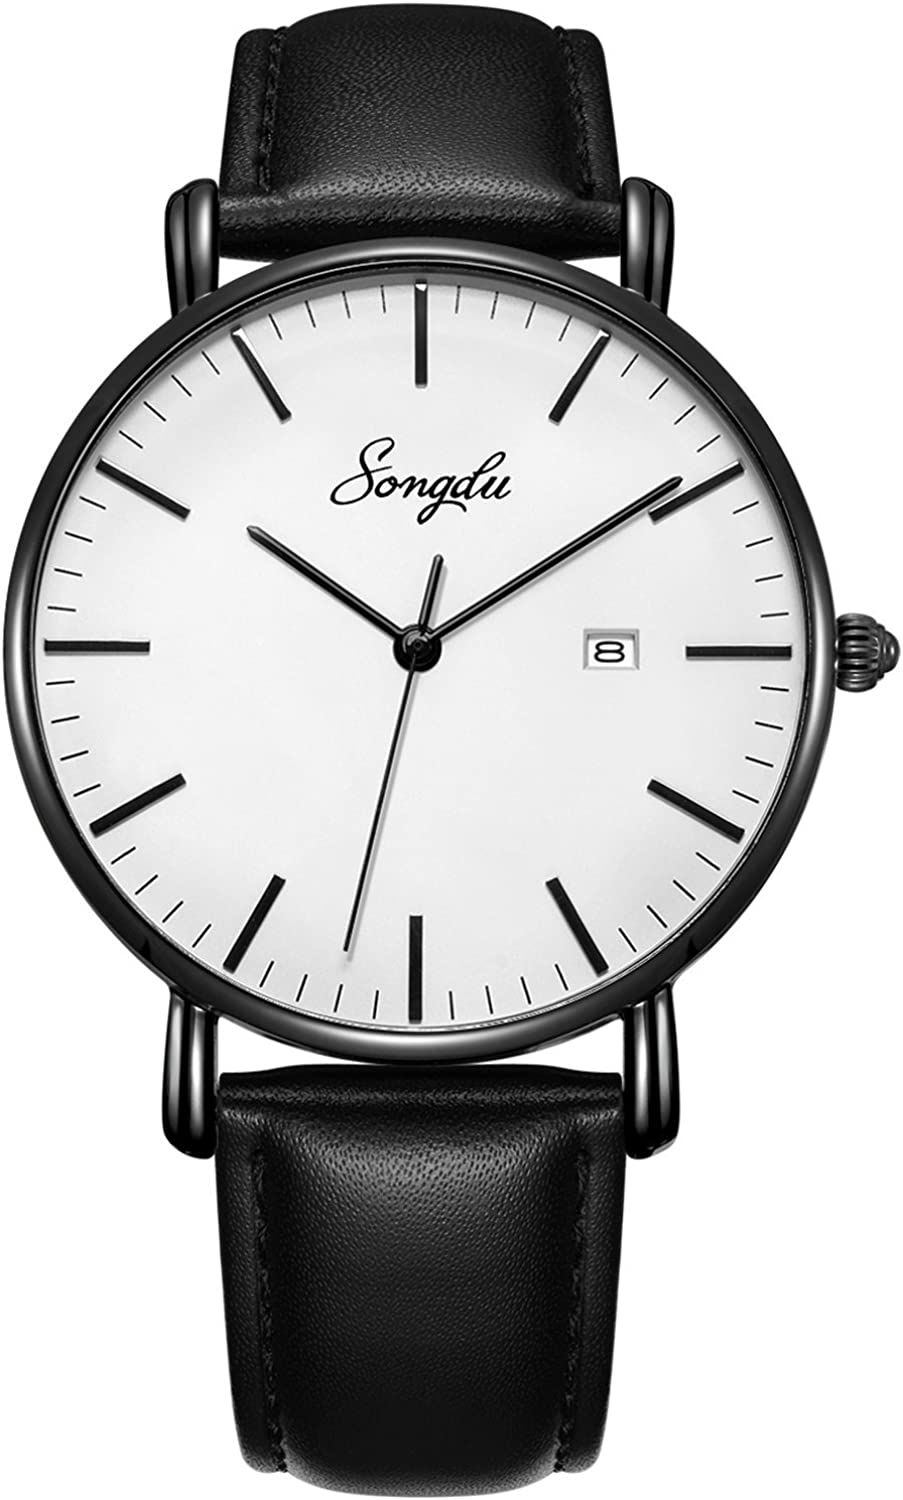 Men s Black Ultra-Thin Analog Quartz Watch Date with Leather Strap Stainless Steel Band